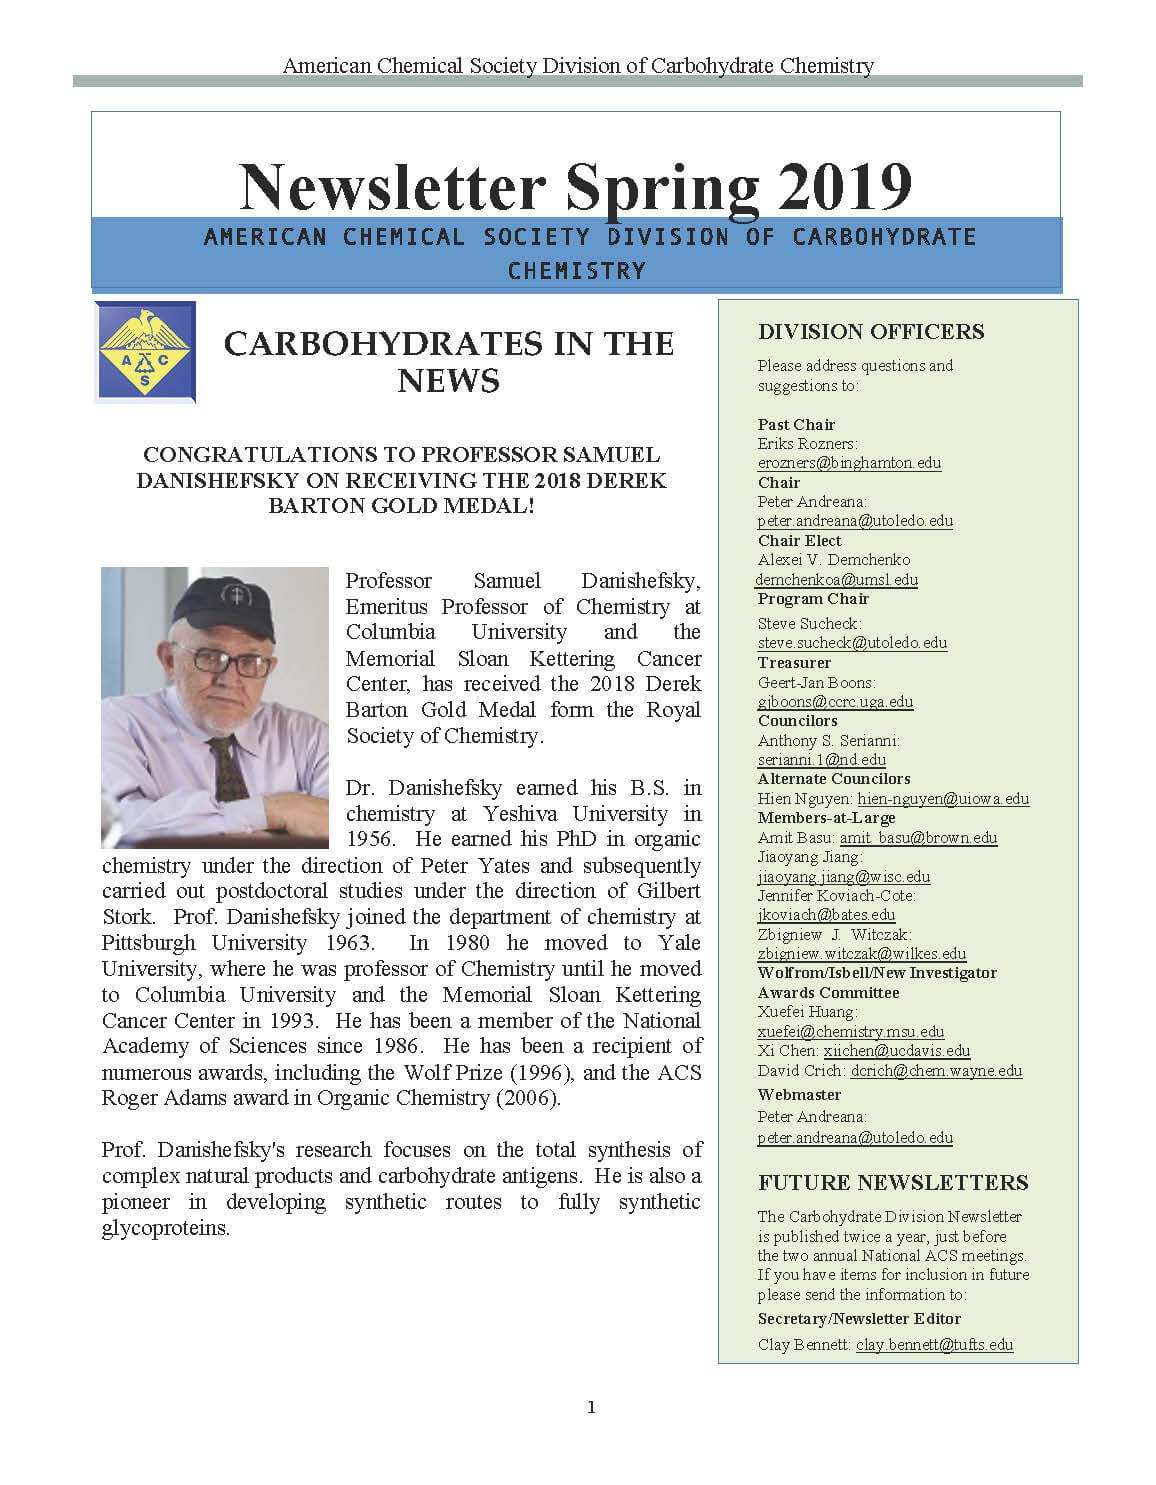 CARB Newsletter Spring 2019